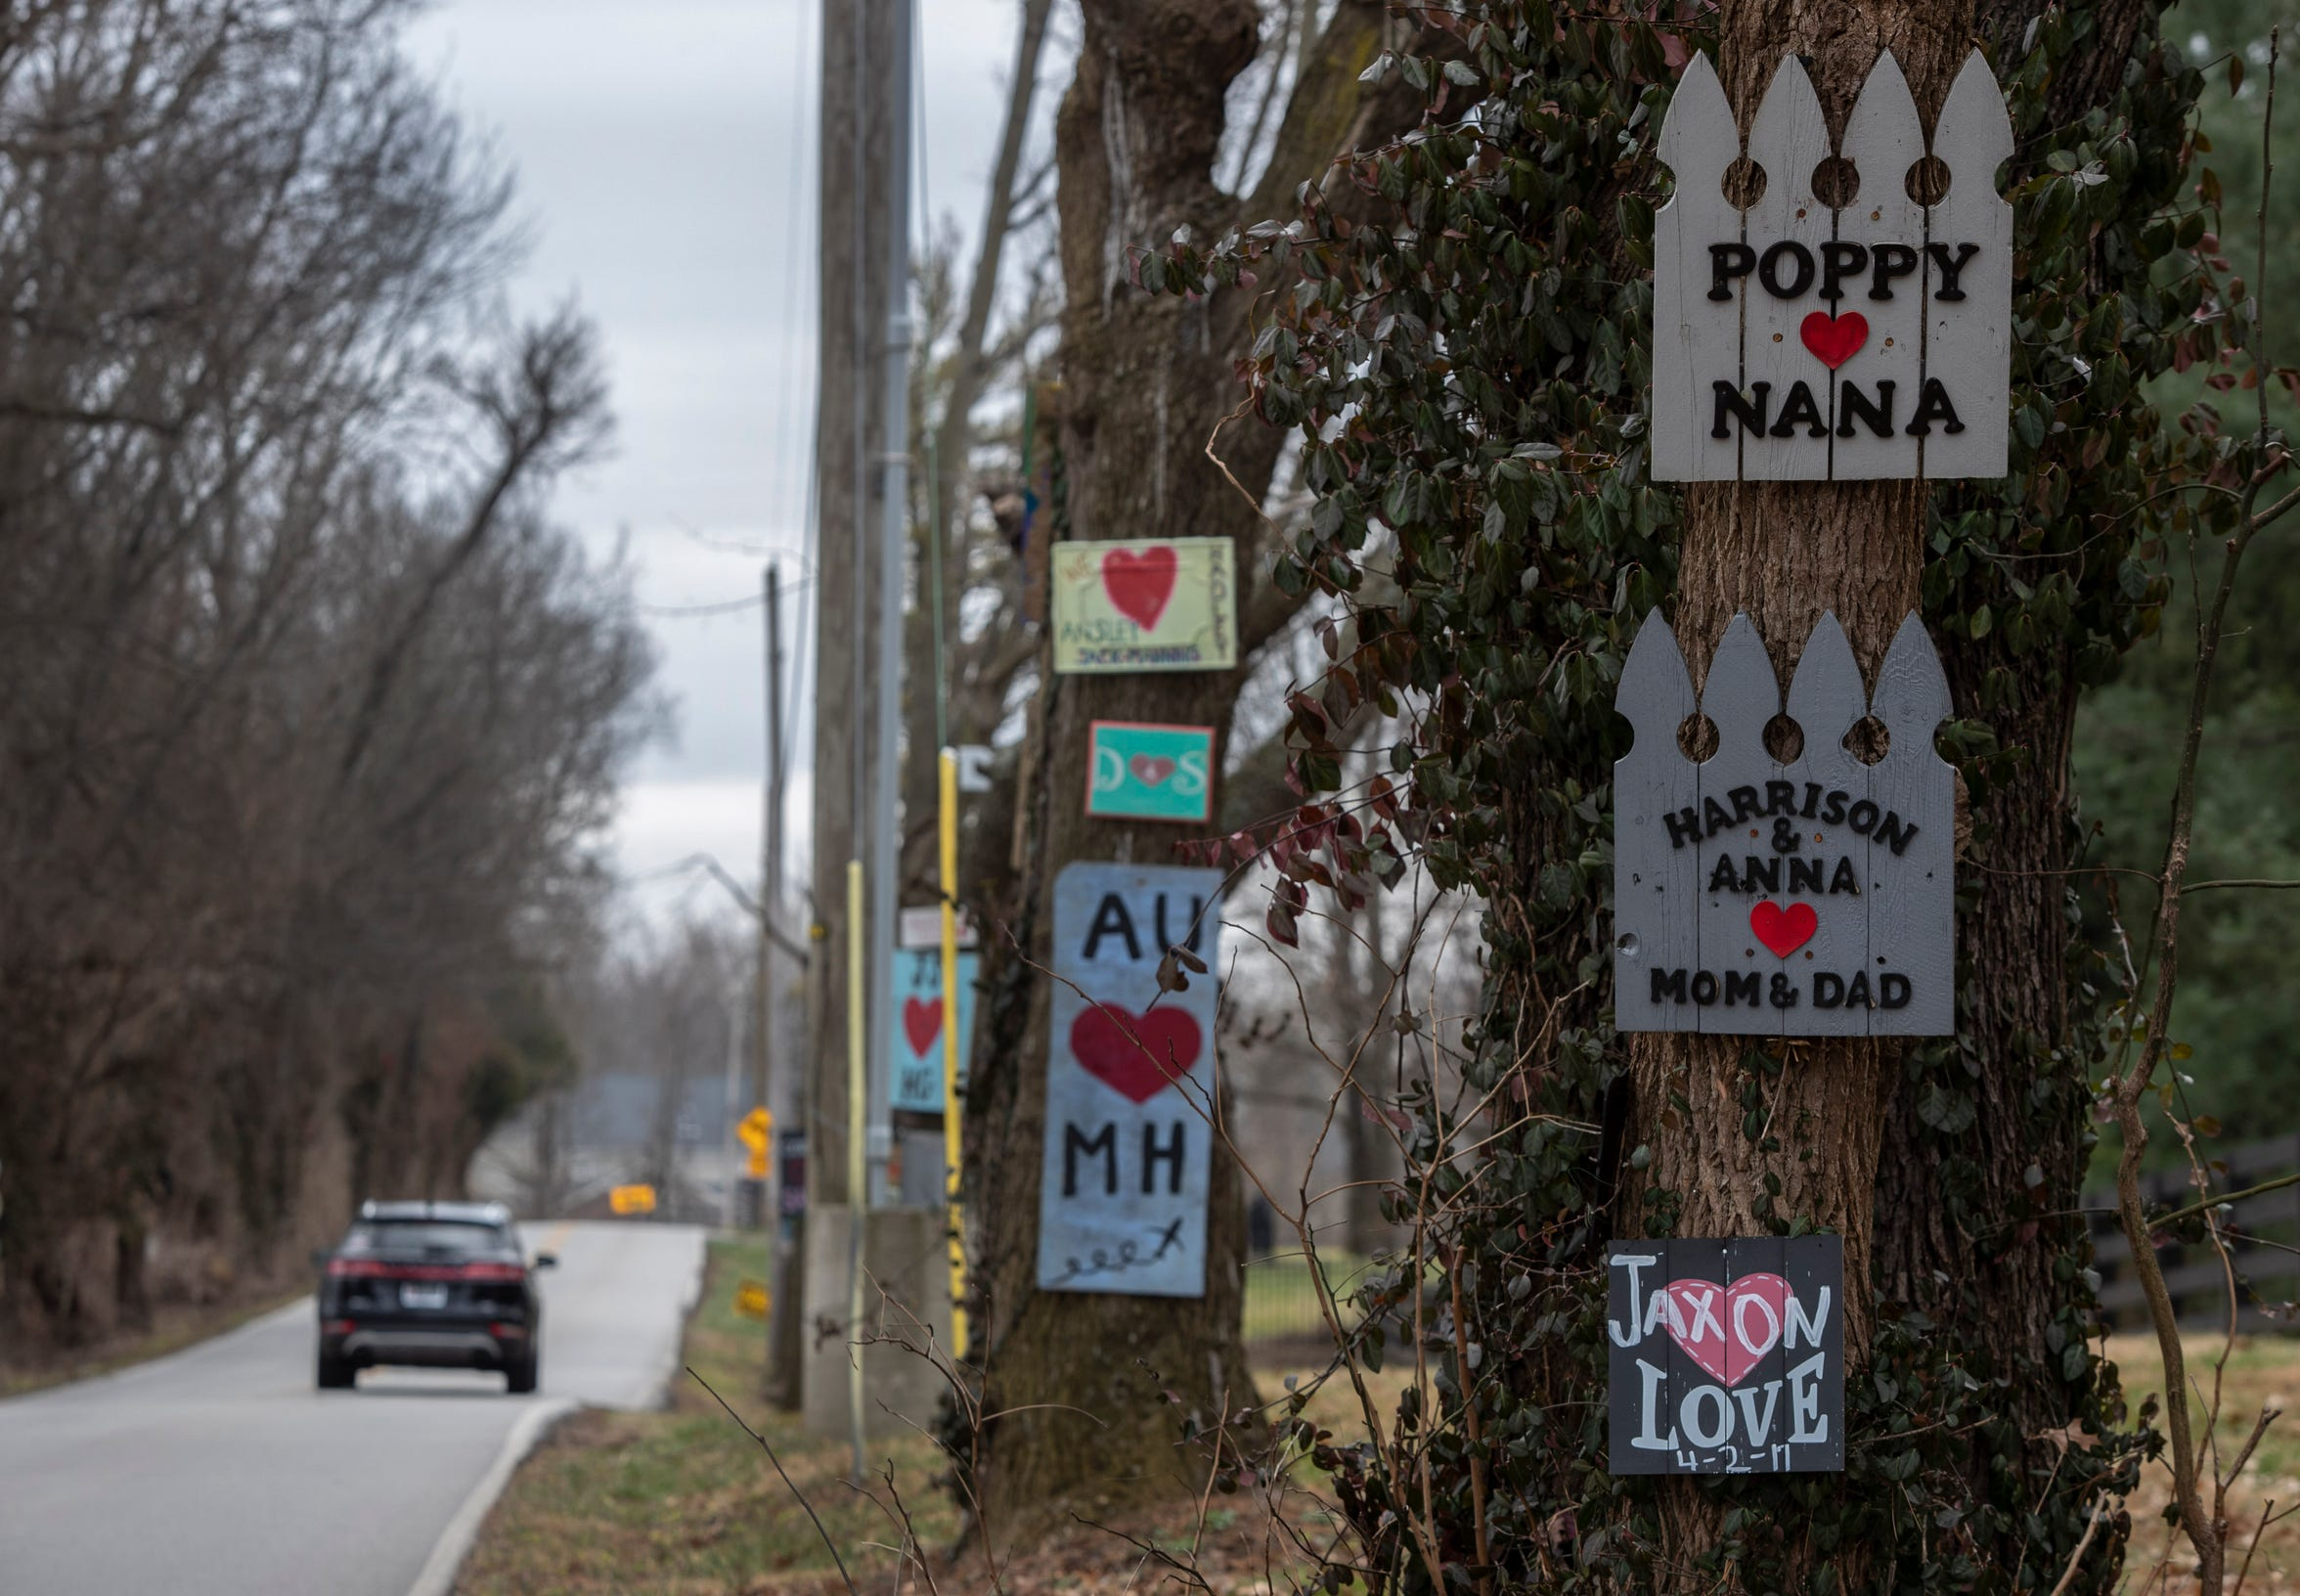 More love signs nailed to trees along Lovers Lane.